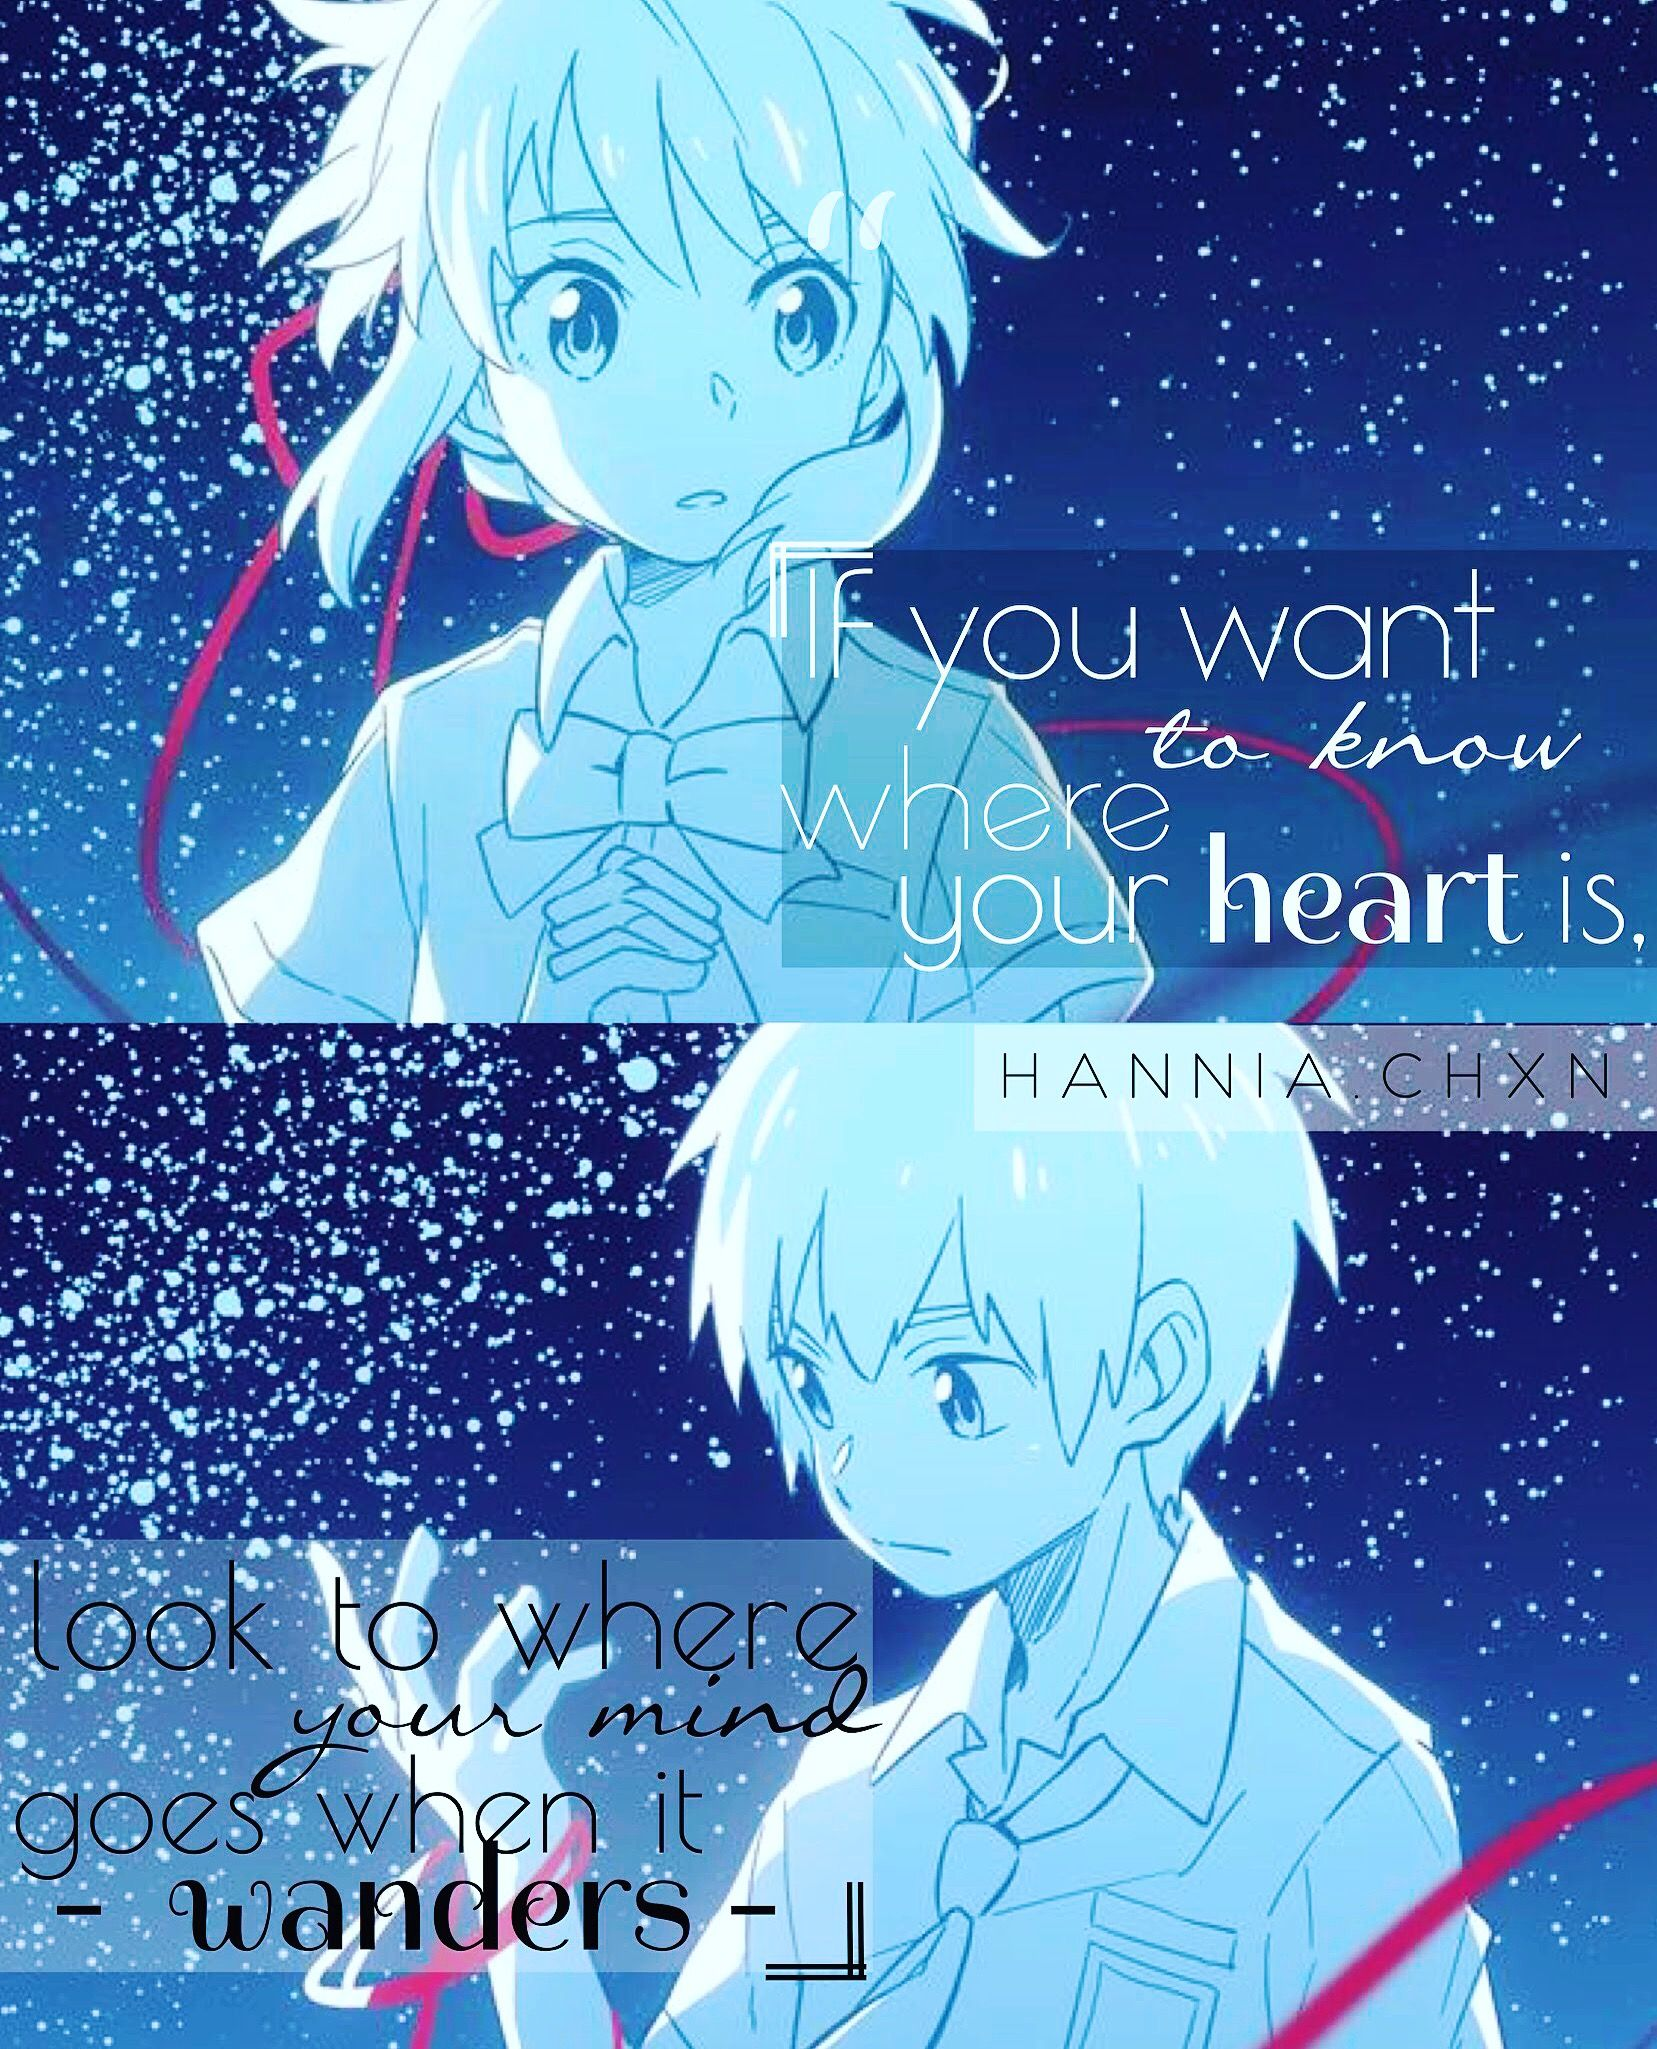 Pin by Mio on Life changing quotes Manga quotes, Anime